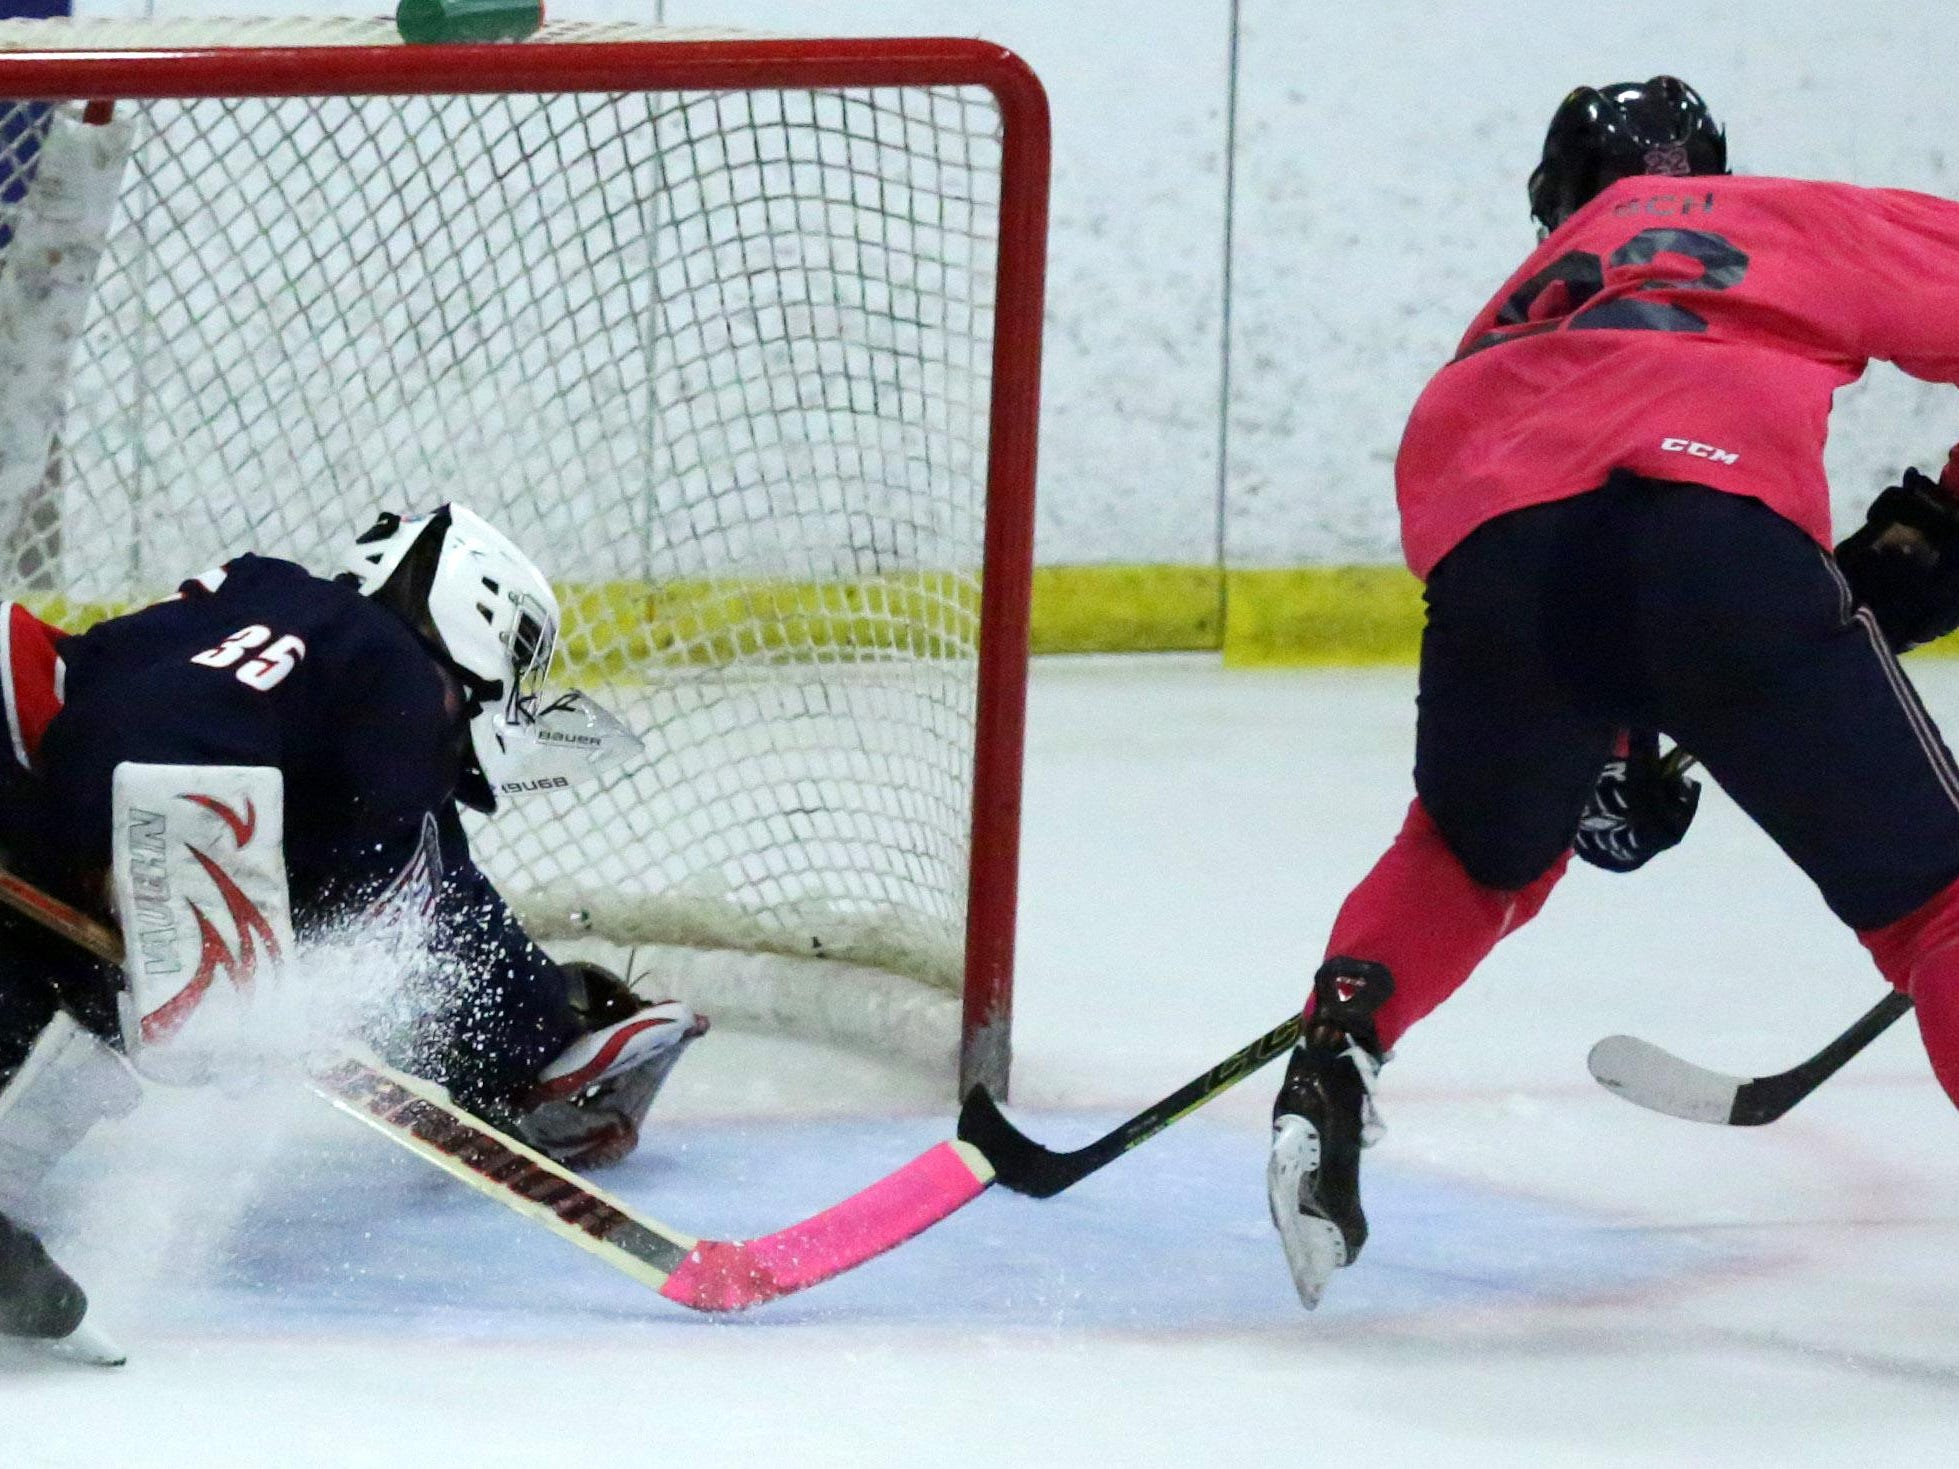 Trenton Bliss of Appleton United gets the puck past Nathan DeLisle of the Fox Cities Stars in a Badgerland Conference boys' hockey game Tuesday at the Appleton Family Ice Center.